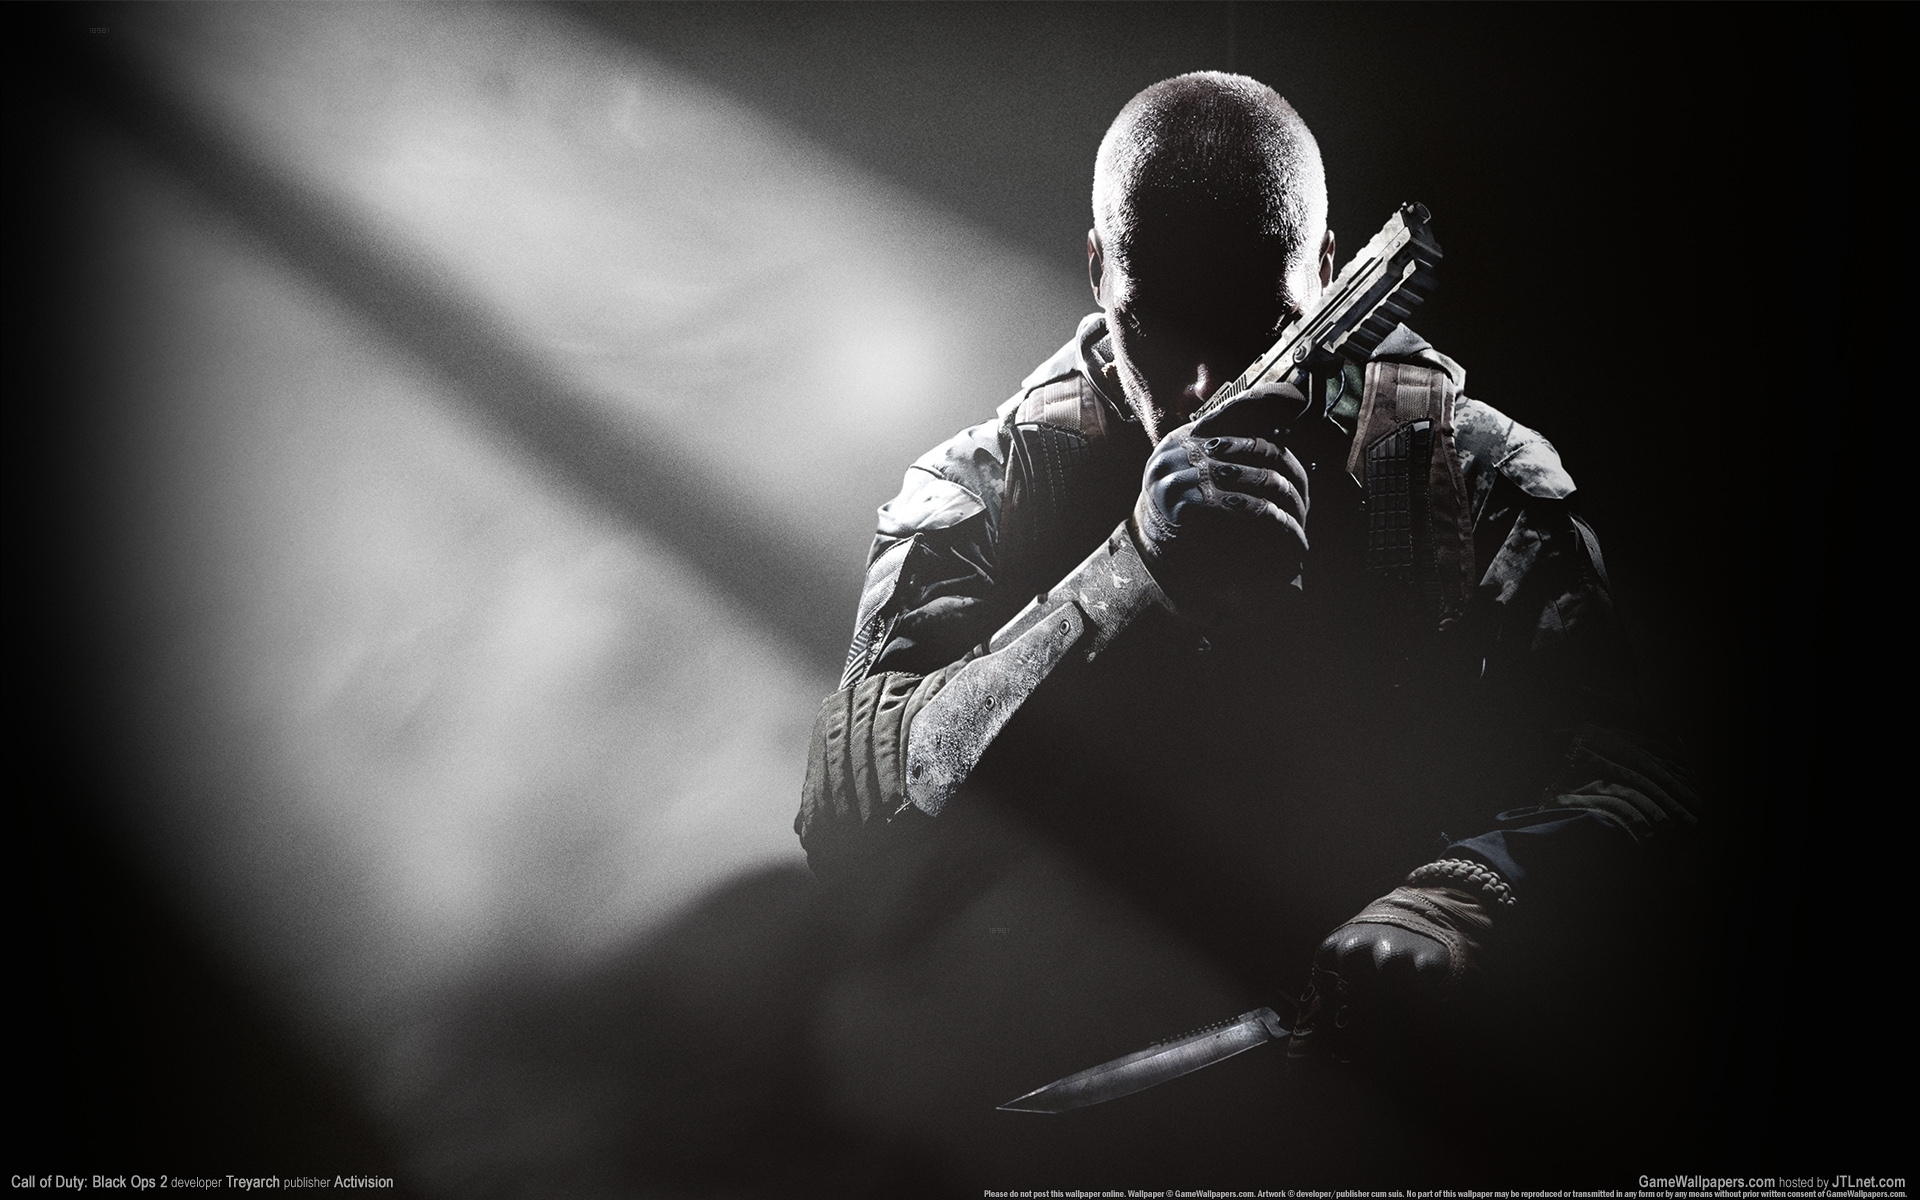 Call Of Duty Bo2 Wallpaper: COD BO2 Wallpaper